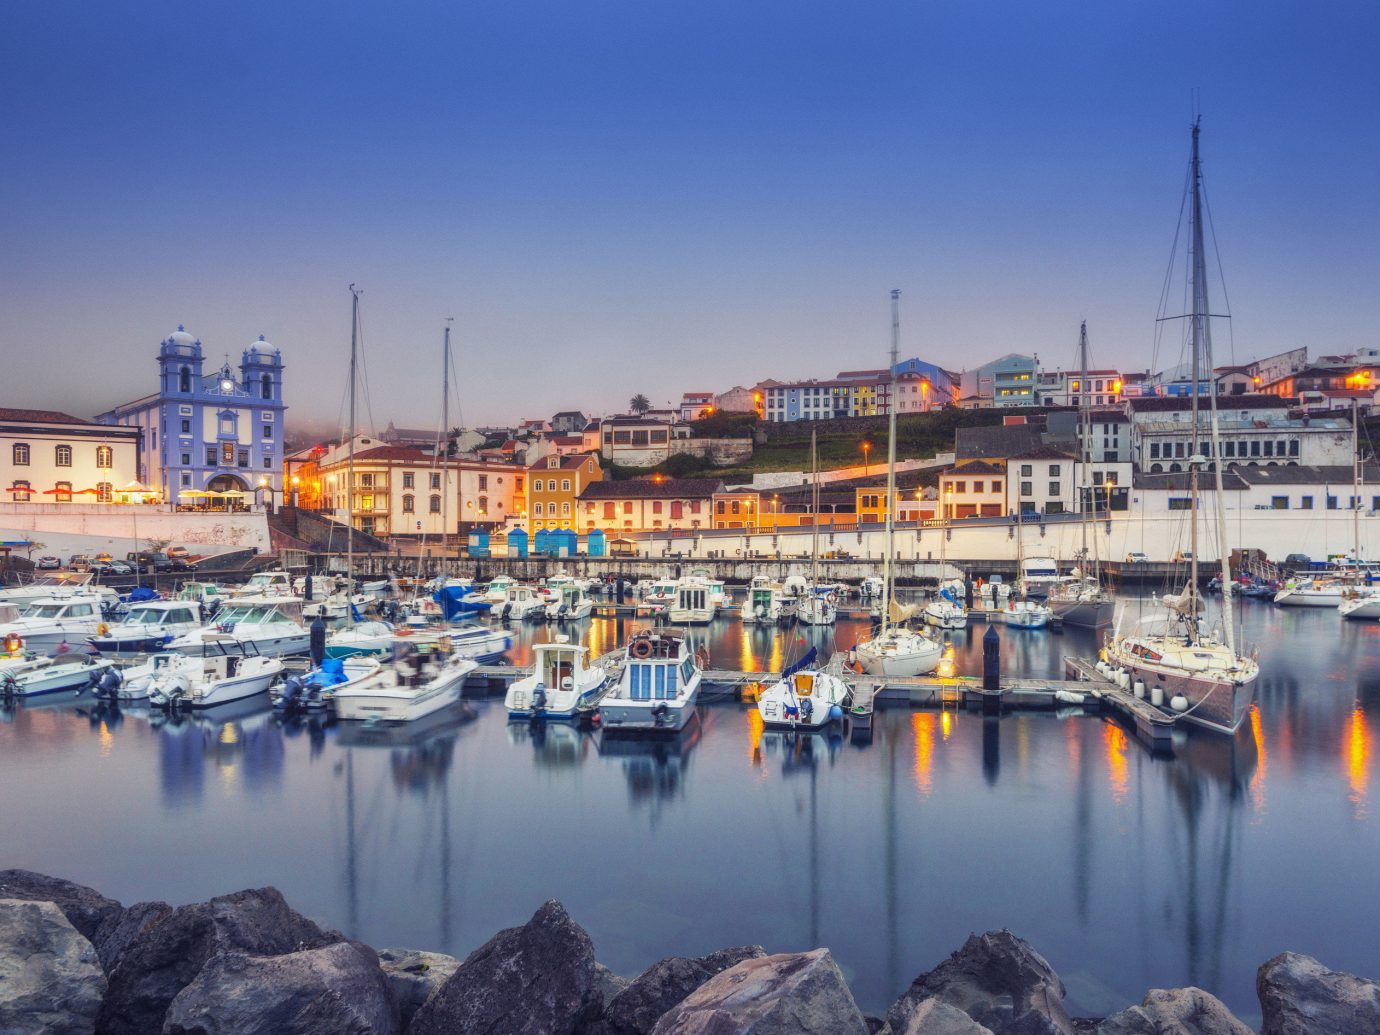 Portugal Trip Ideas marina Harbor reflection water sky port dock City evening Sea Boat morning cityscape watercraft dusk horizon Ocean channel tourism